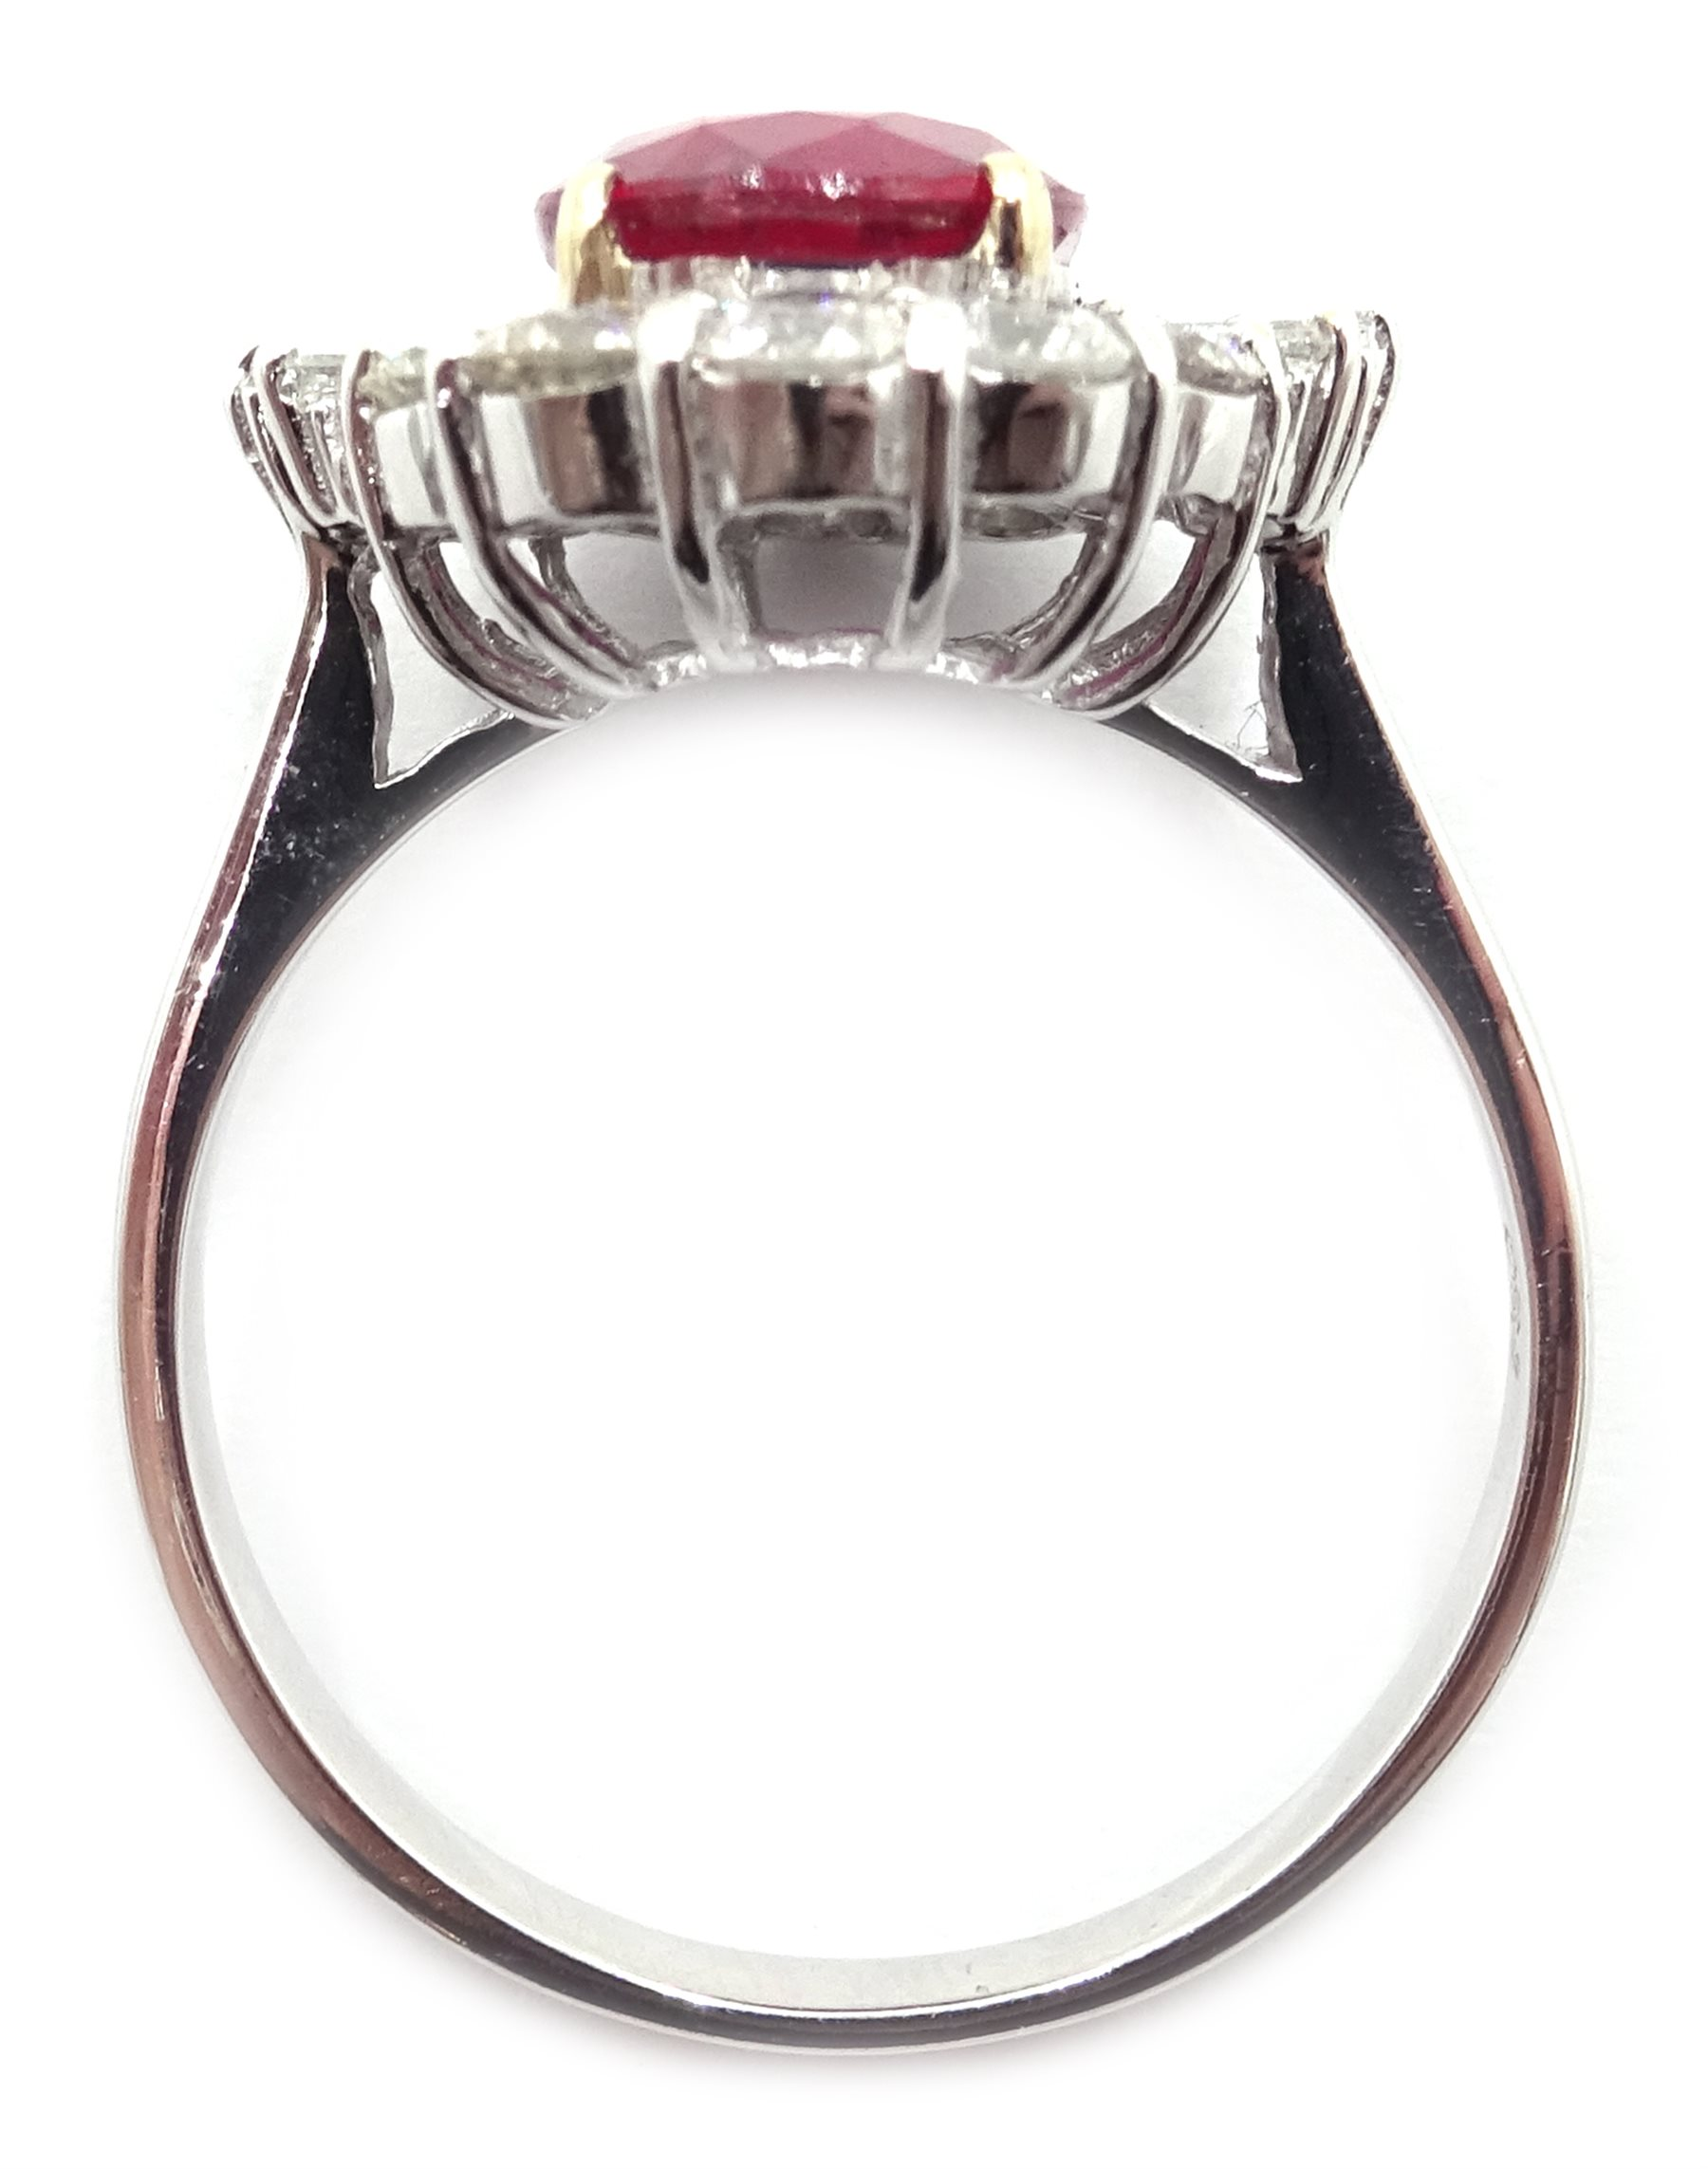 18ct white gold ruby and diamond cluster ring, stamped 750